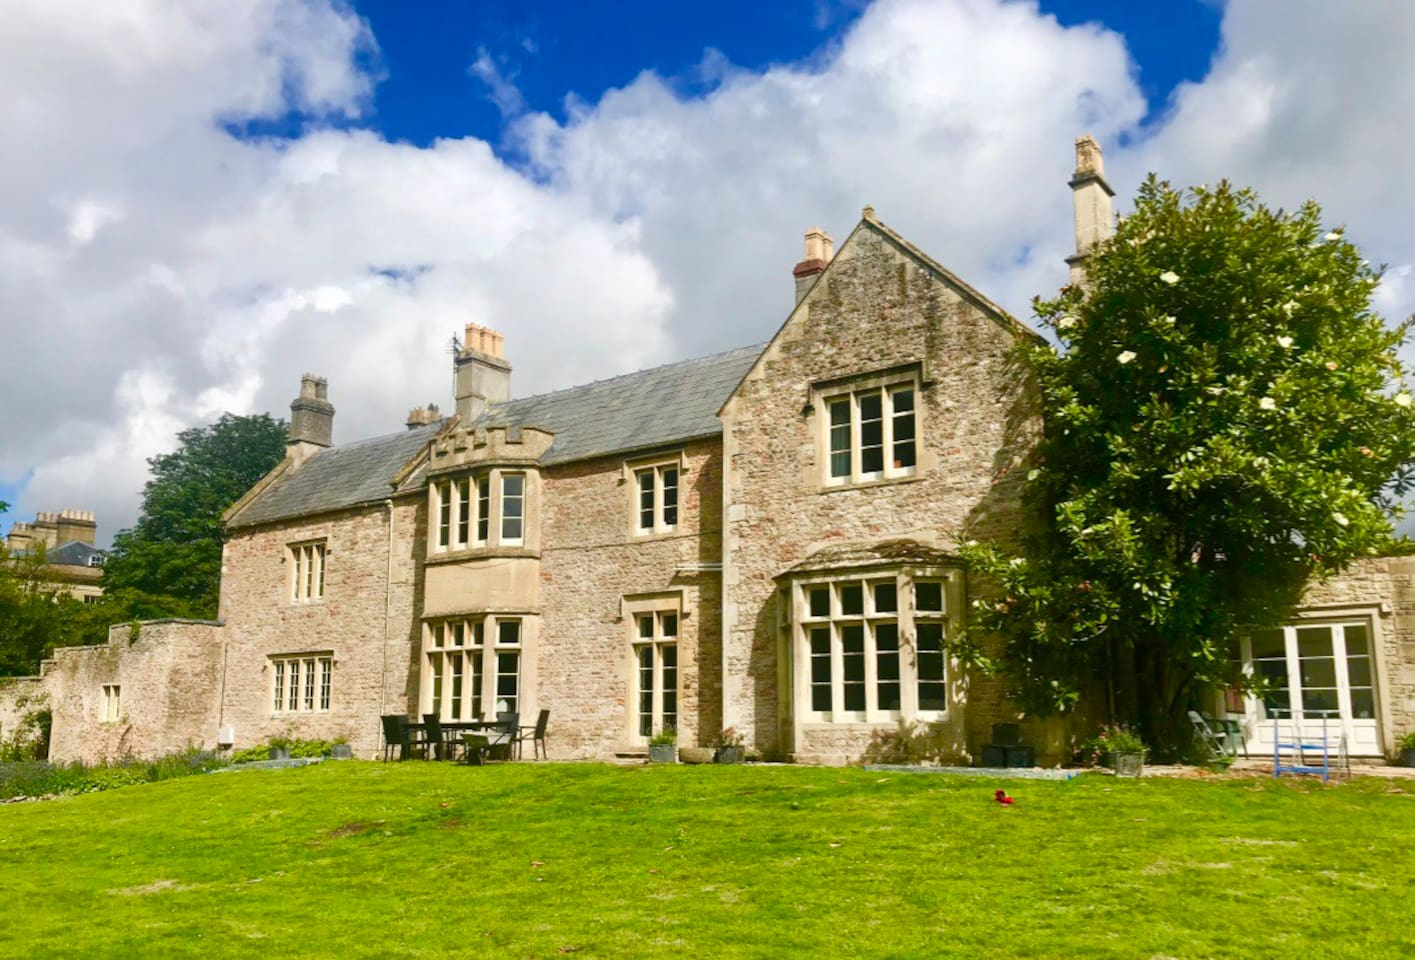 The Old Rectory & West House